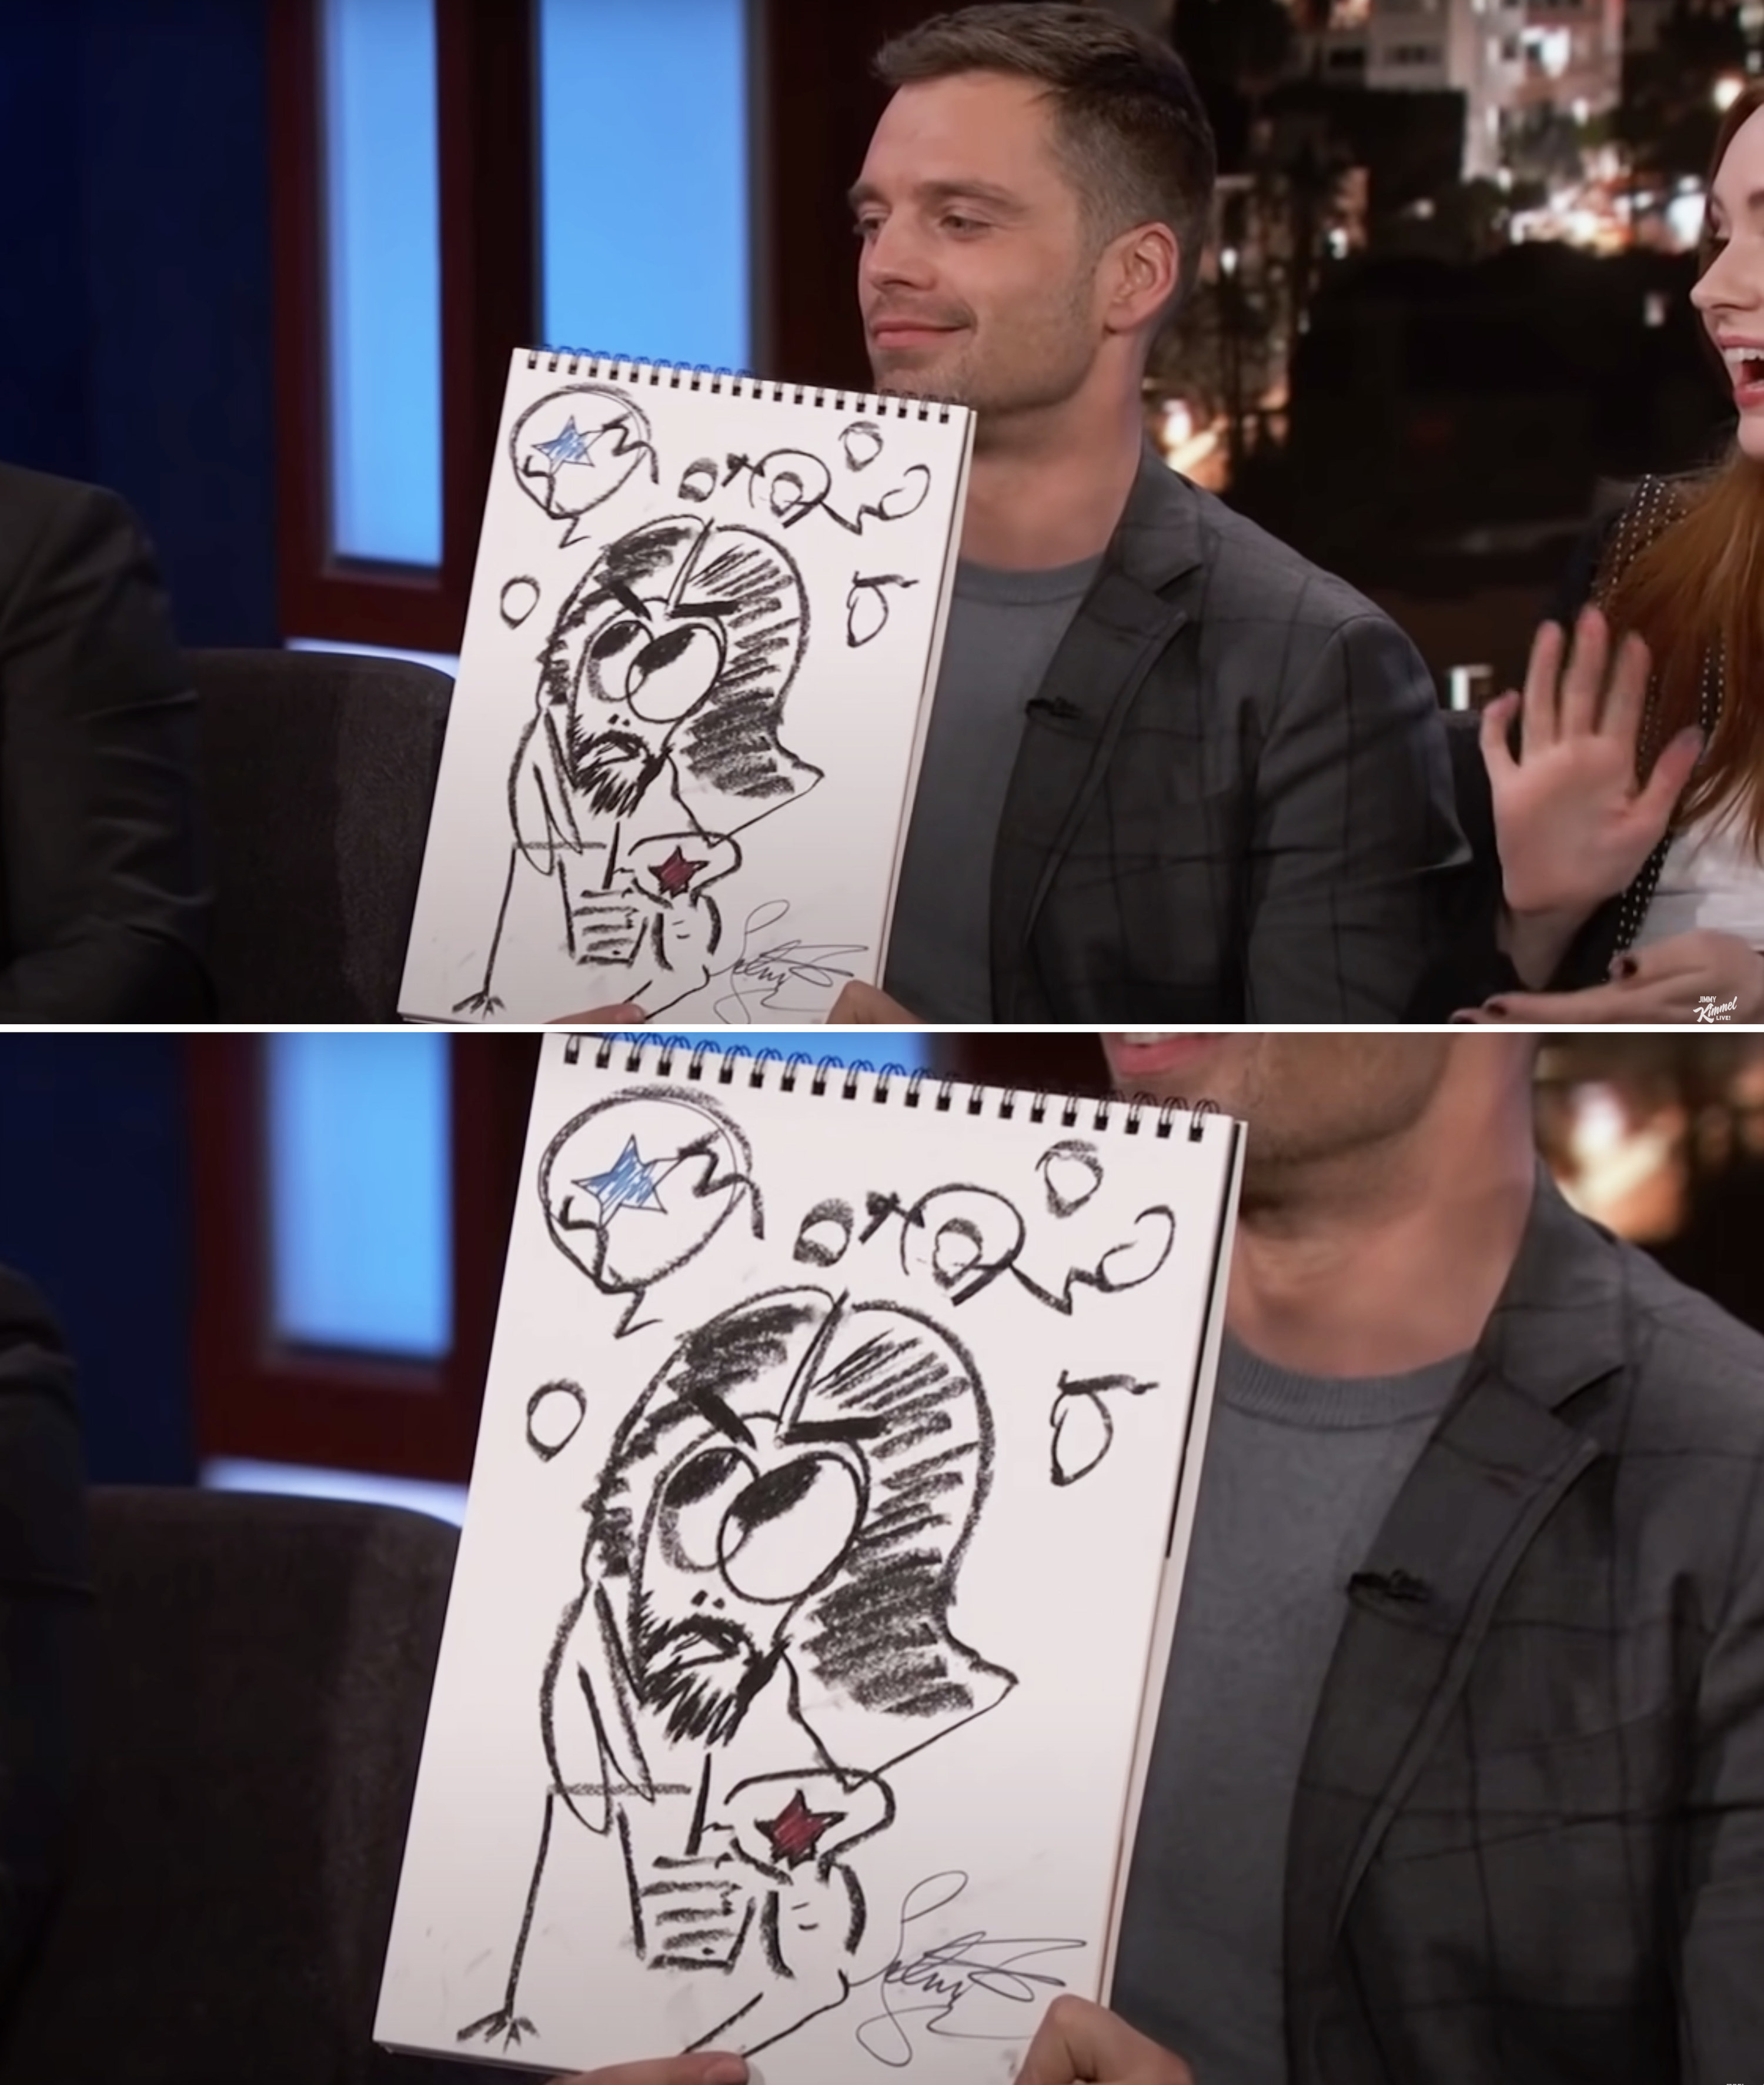 Sebastian holding up his drawing of Bucky and smiling